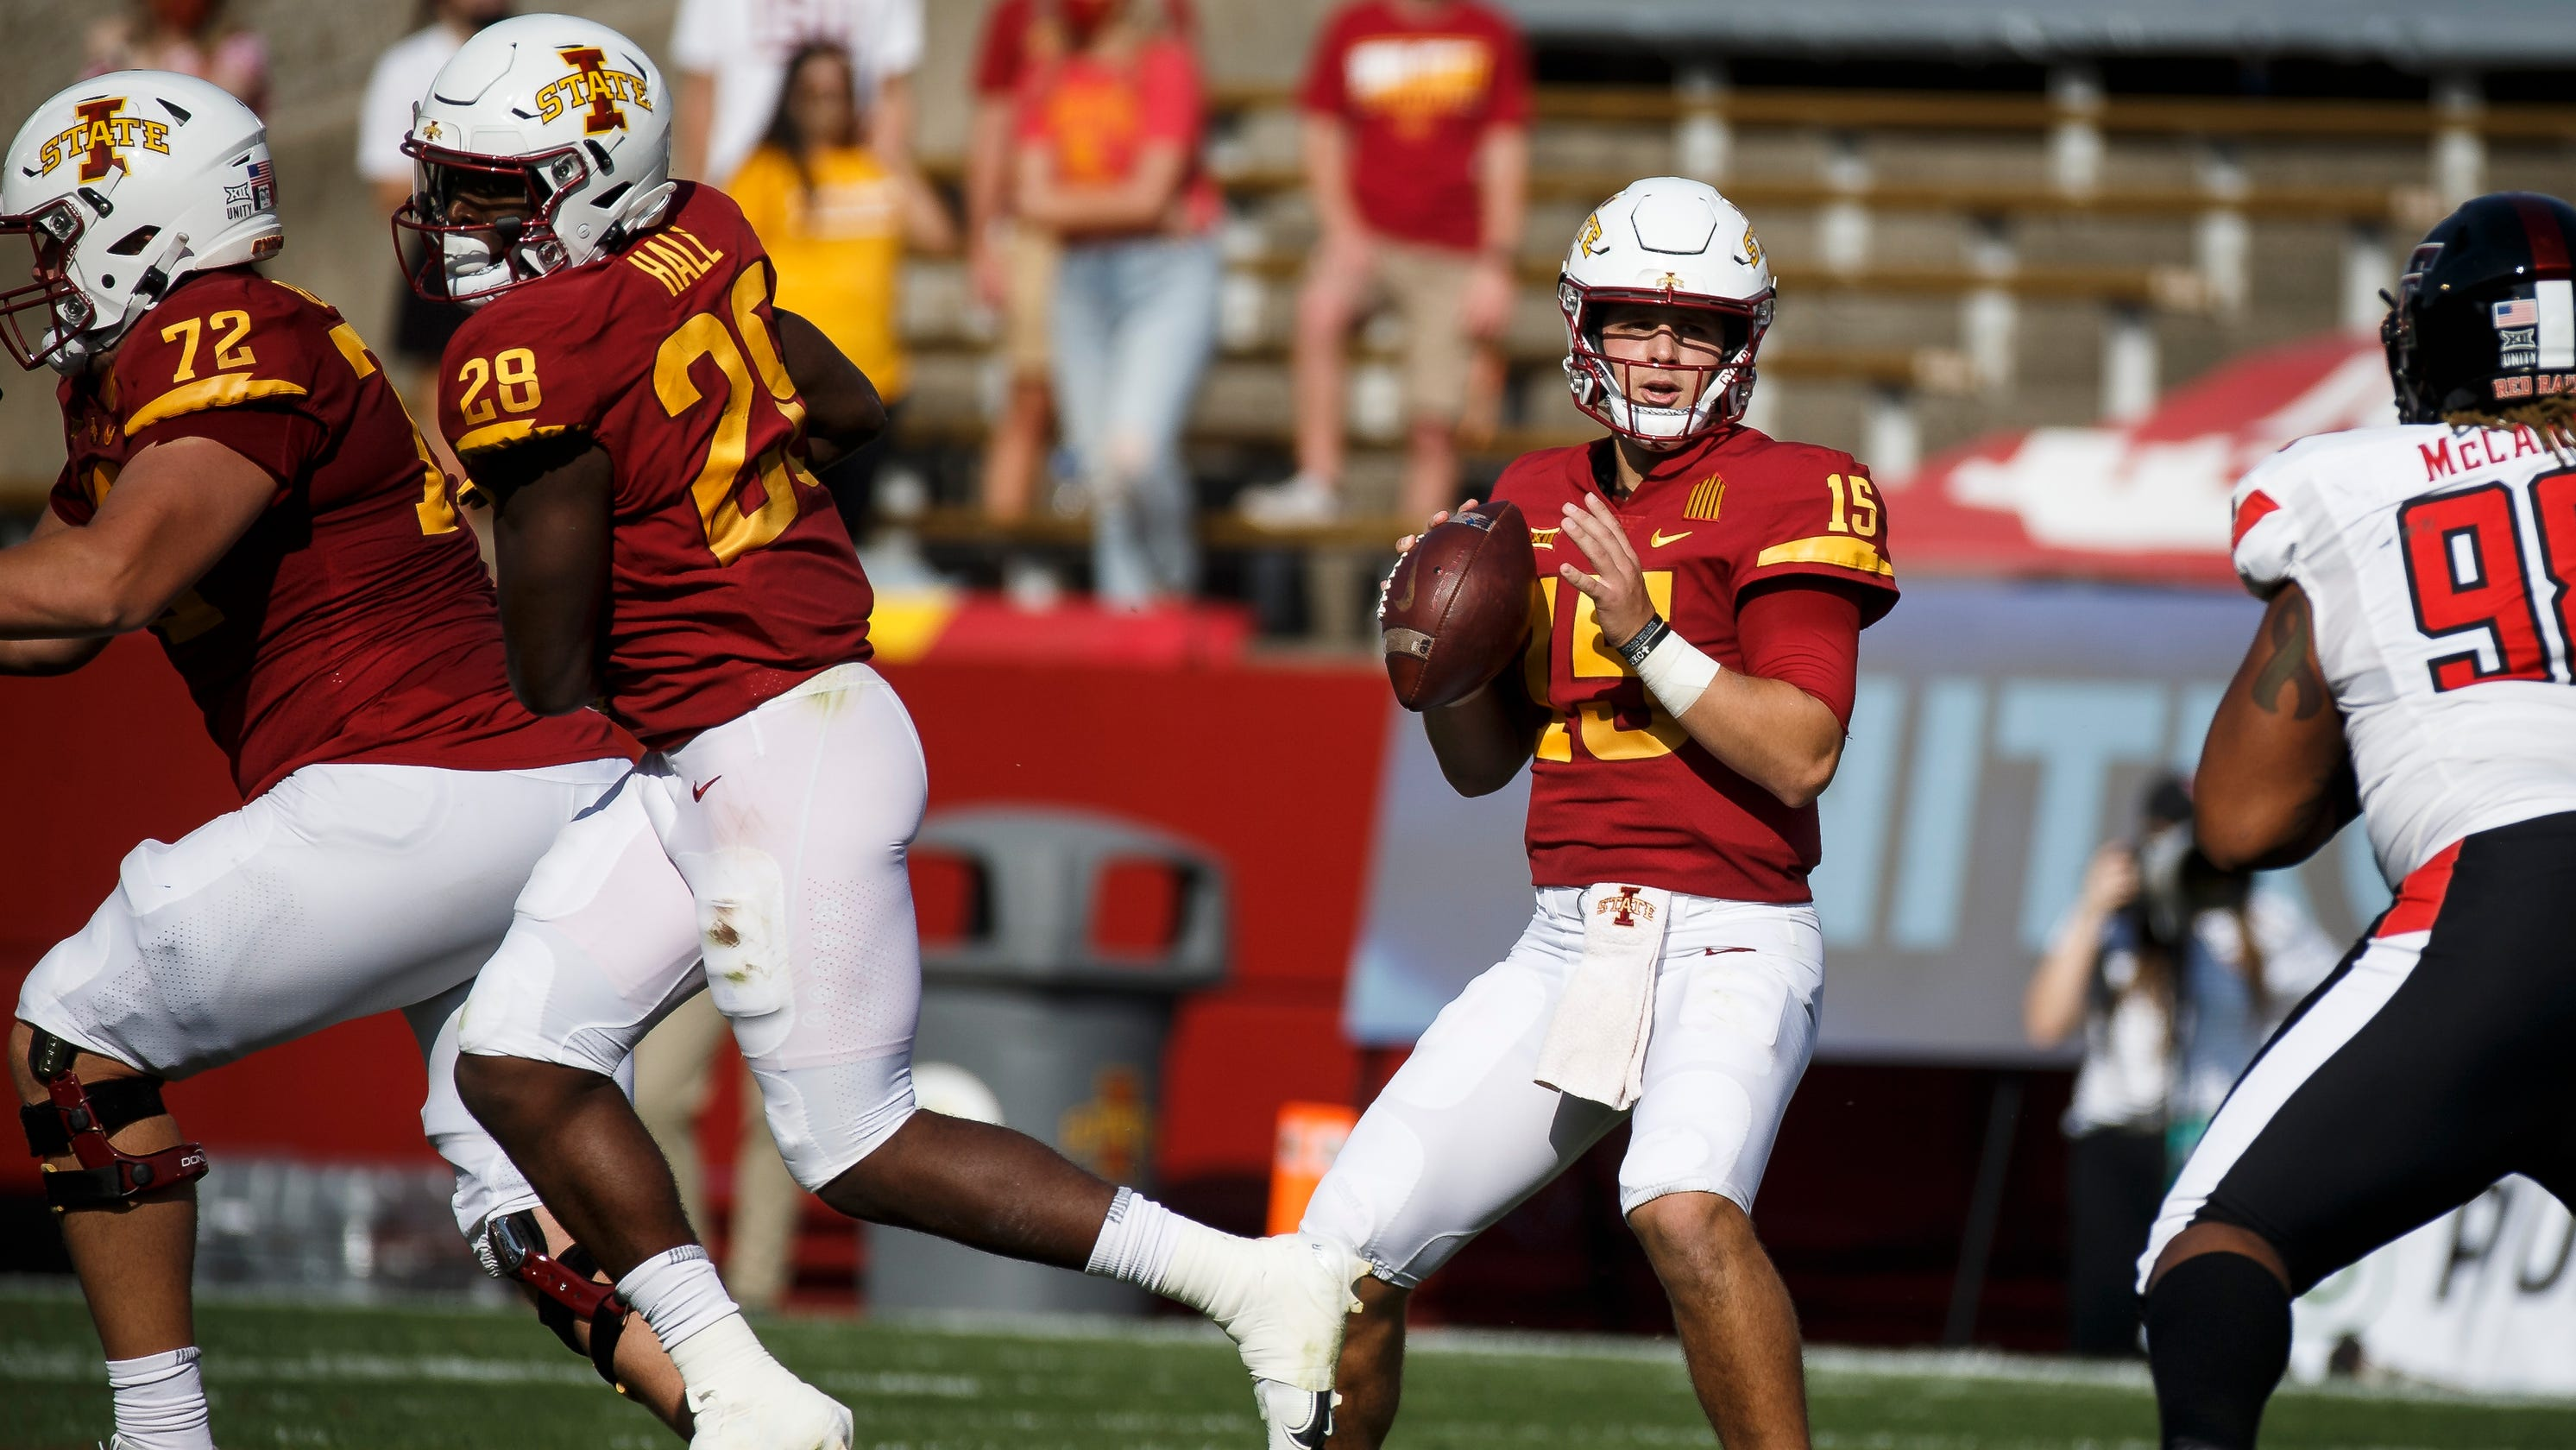 Iowa State football notebook: Mike Gundy calls Brock Purdy 'future NFL quarterback'